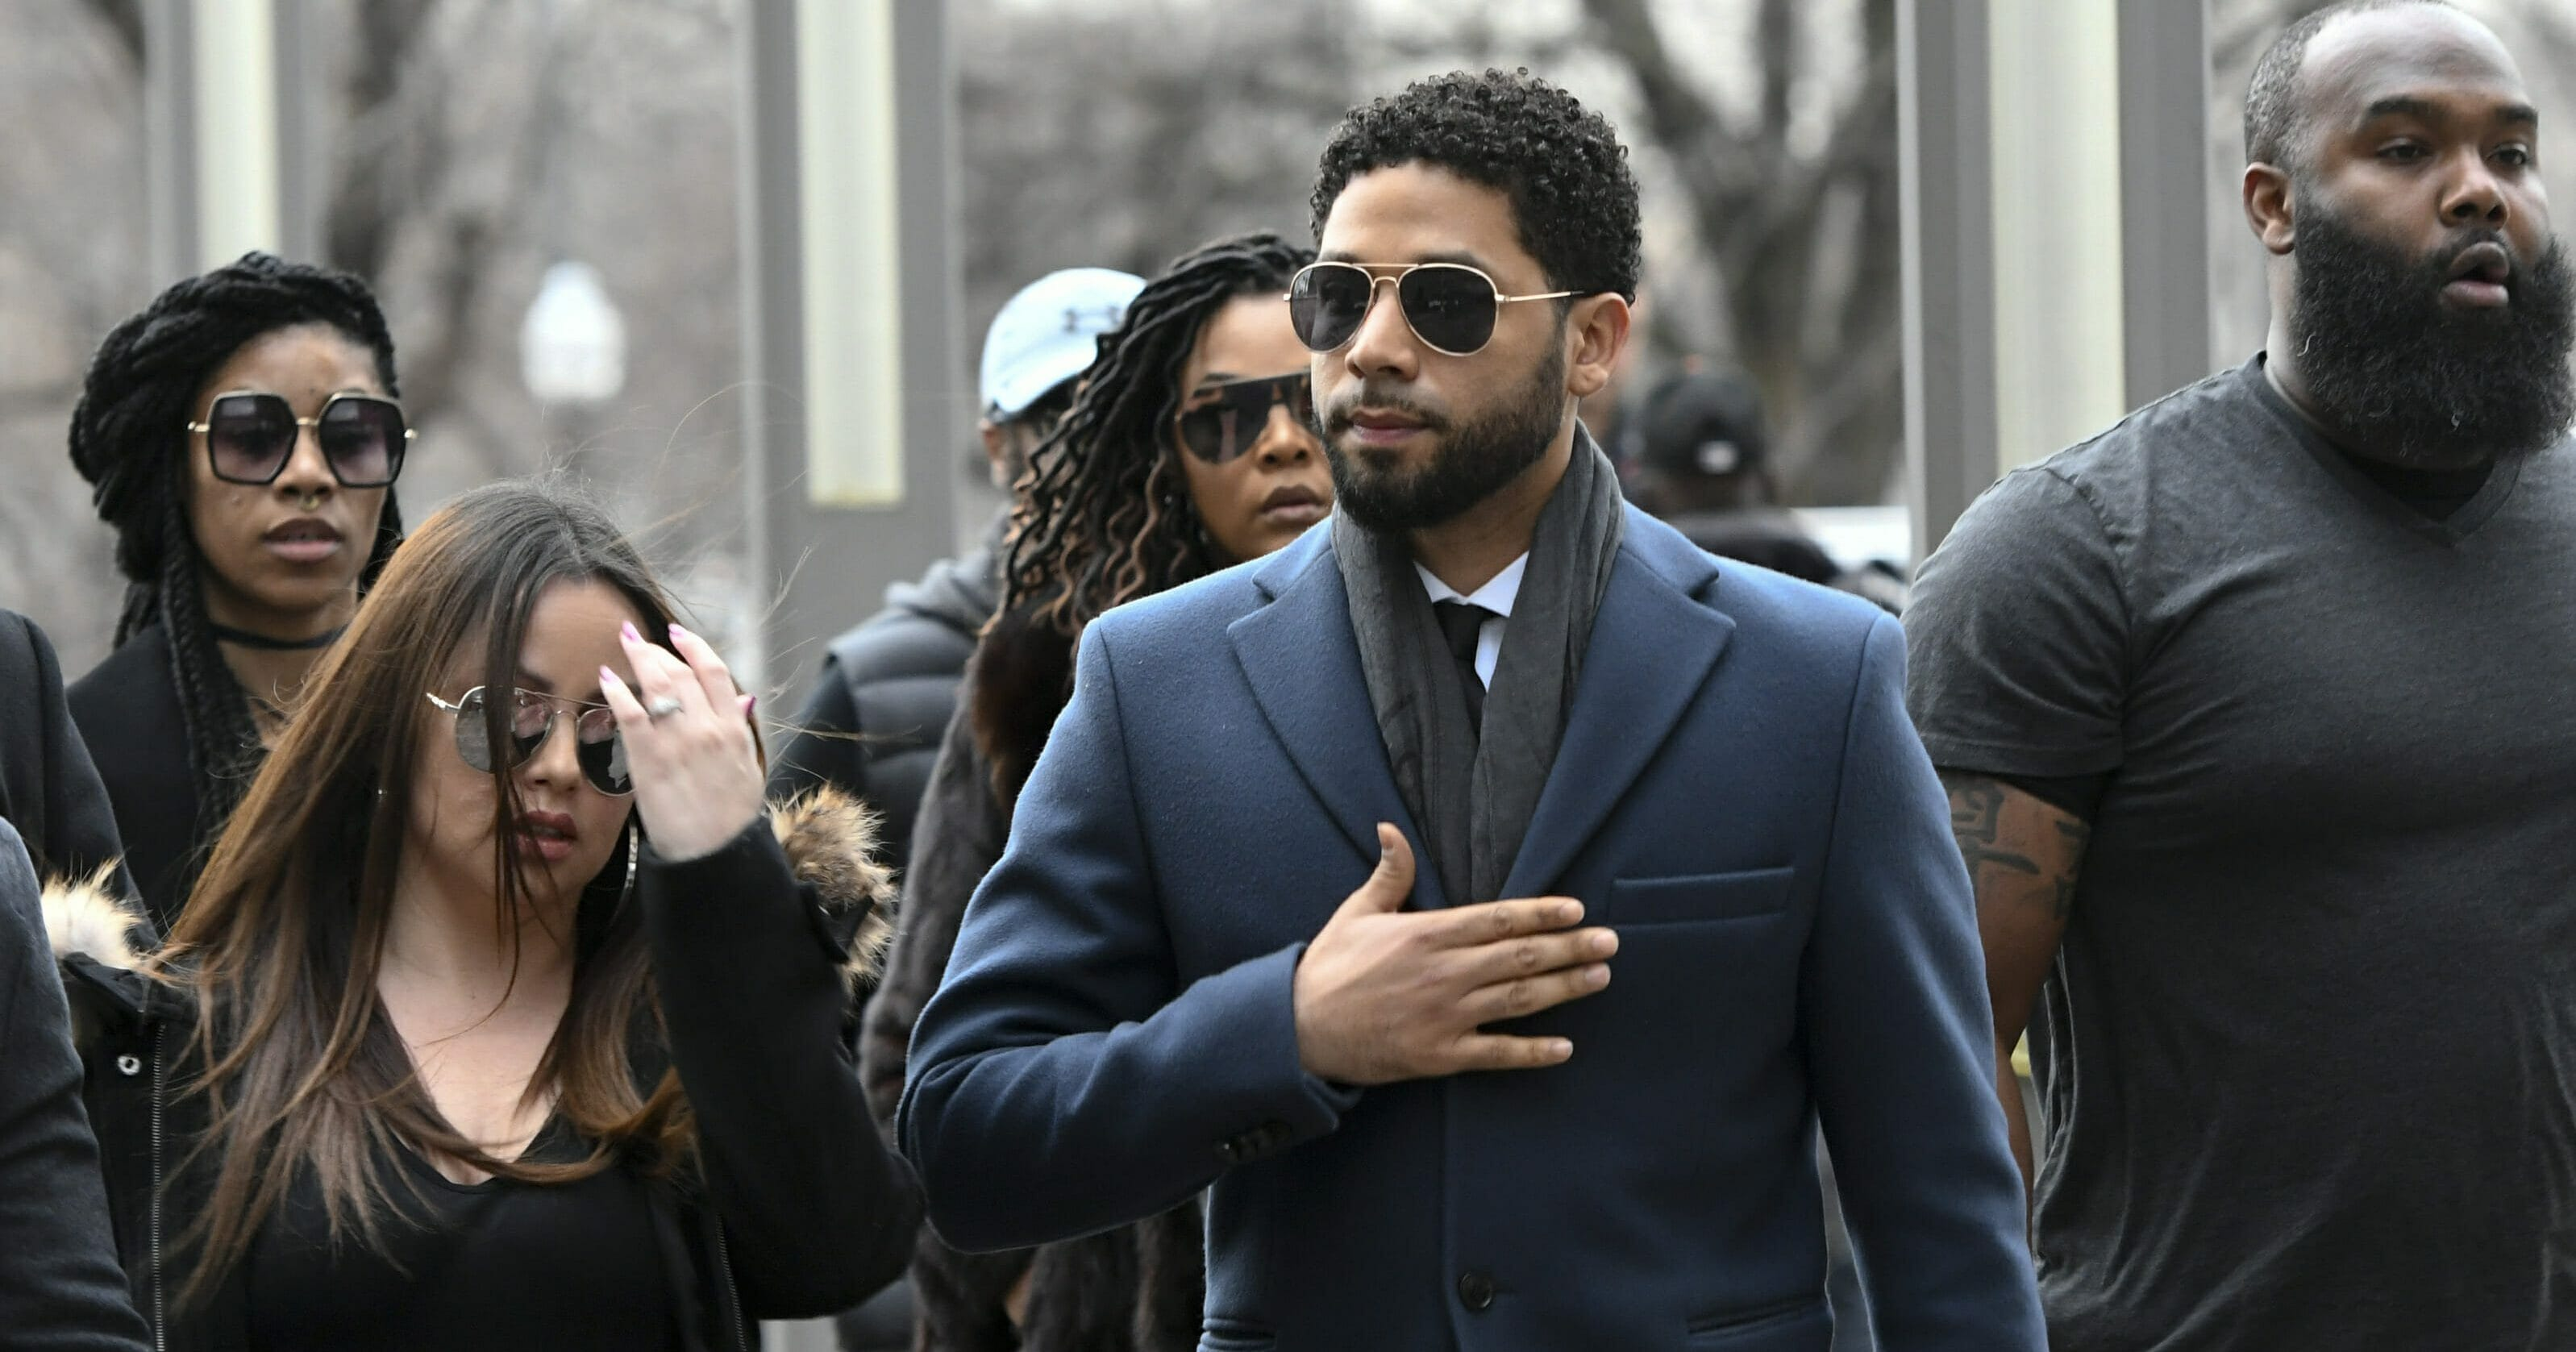 """""""Empire"""" actor Jussie Smollett, center, arrives at the Leighton Criminal Court Building in Chicago for a hearing March 14, 2019."""